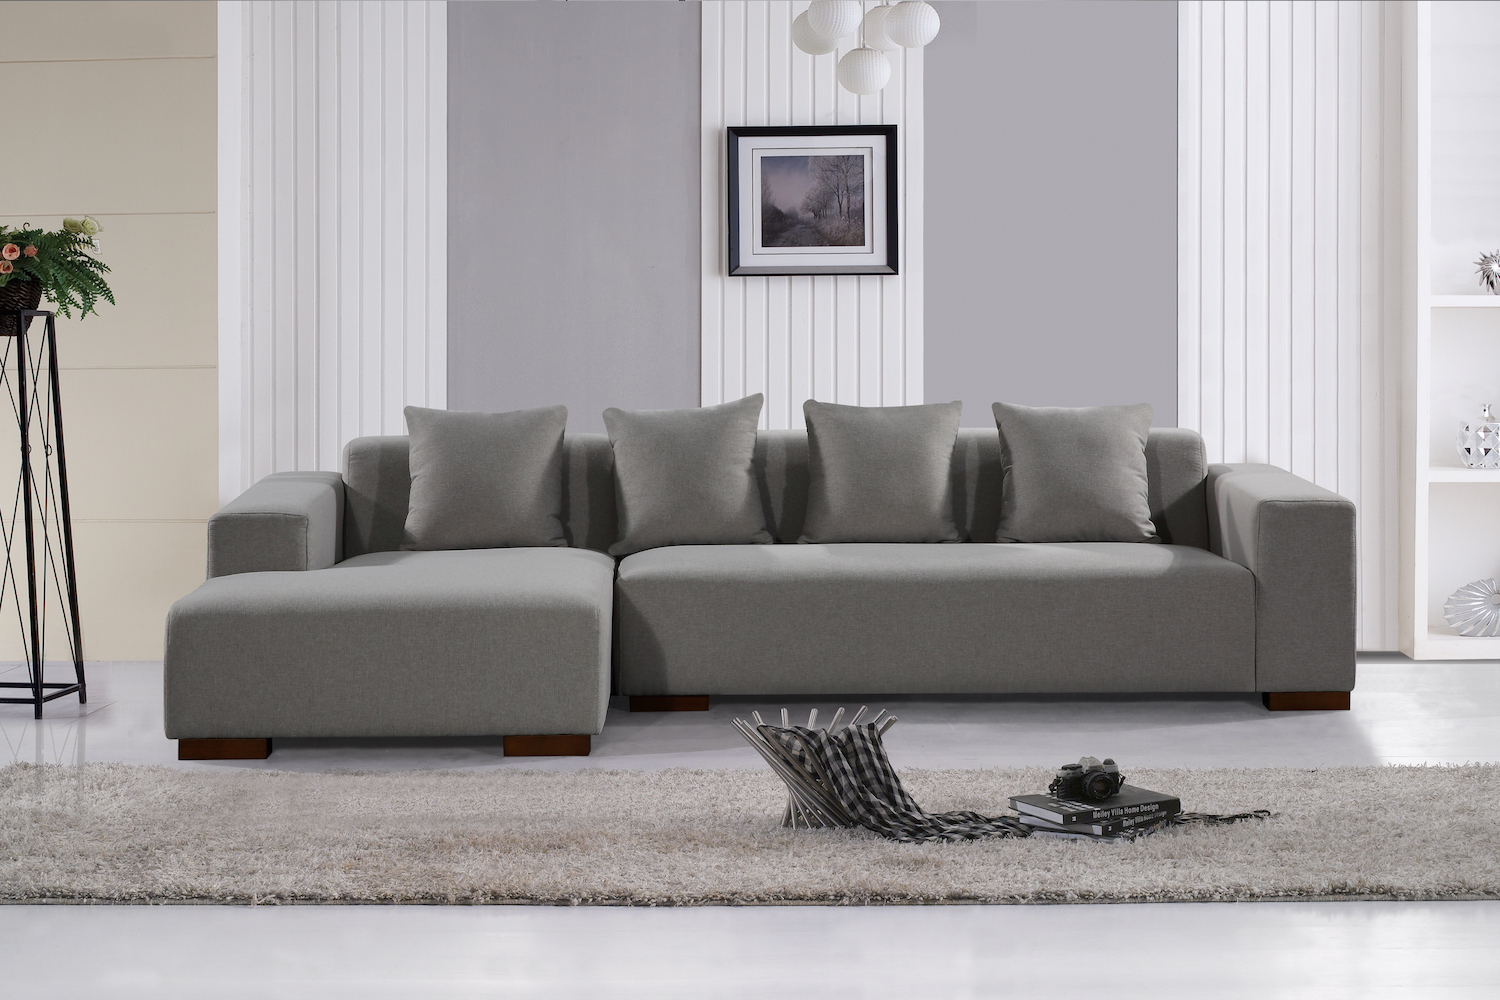 high quality fabric sectional sofa valencia black recliner leather suite 3 2 seater deep seating light grey